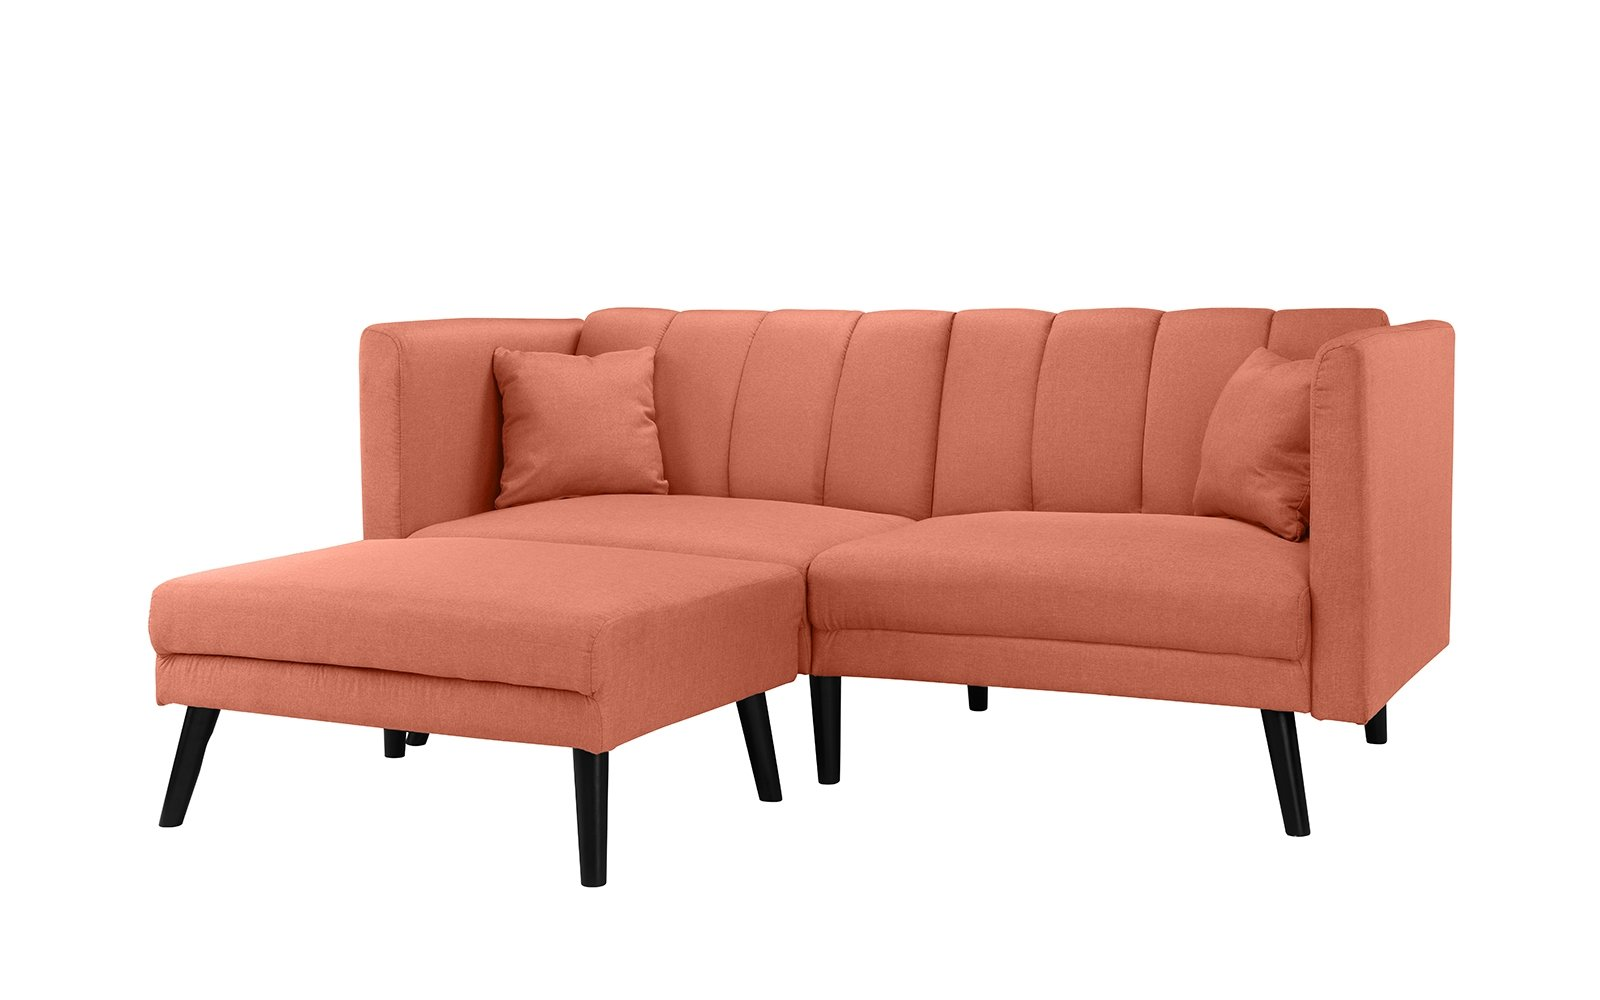 Midcentury Modern Sofa Bed Mid Century Modern Fabric Futon Sofa Bed Sleeper Orange